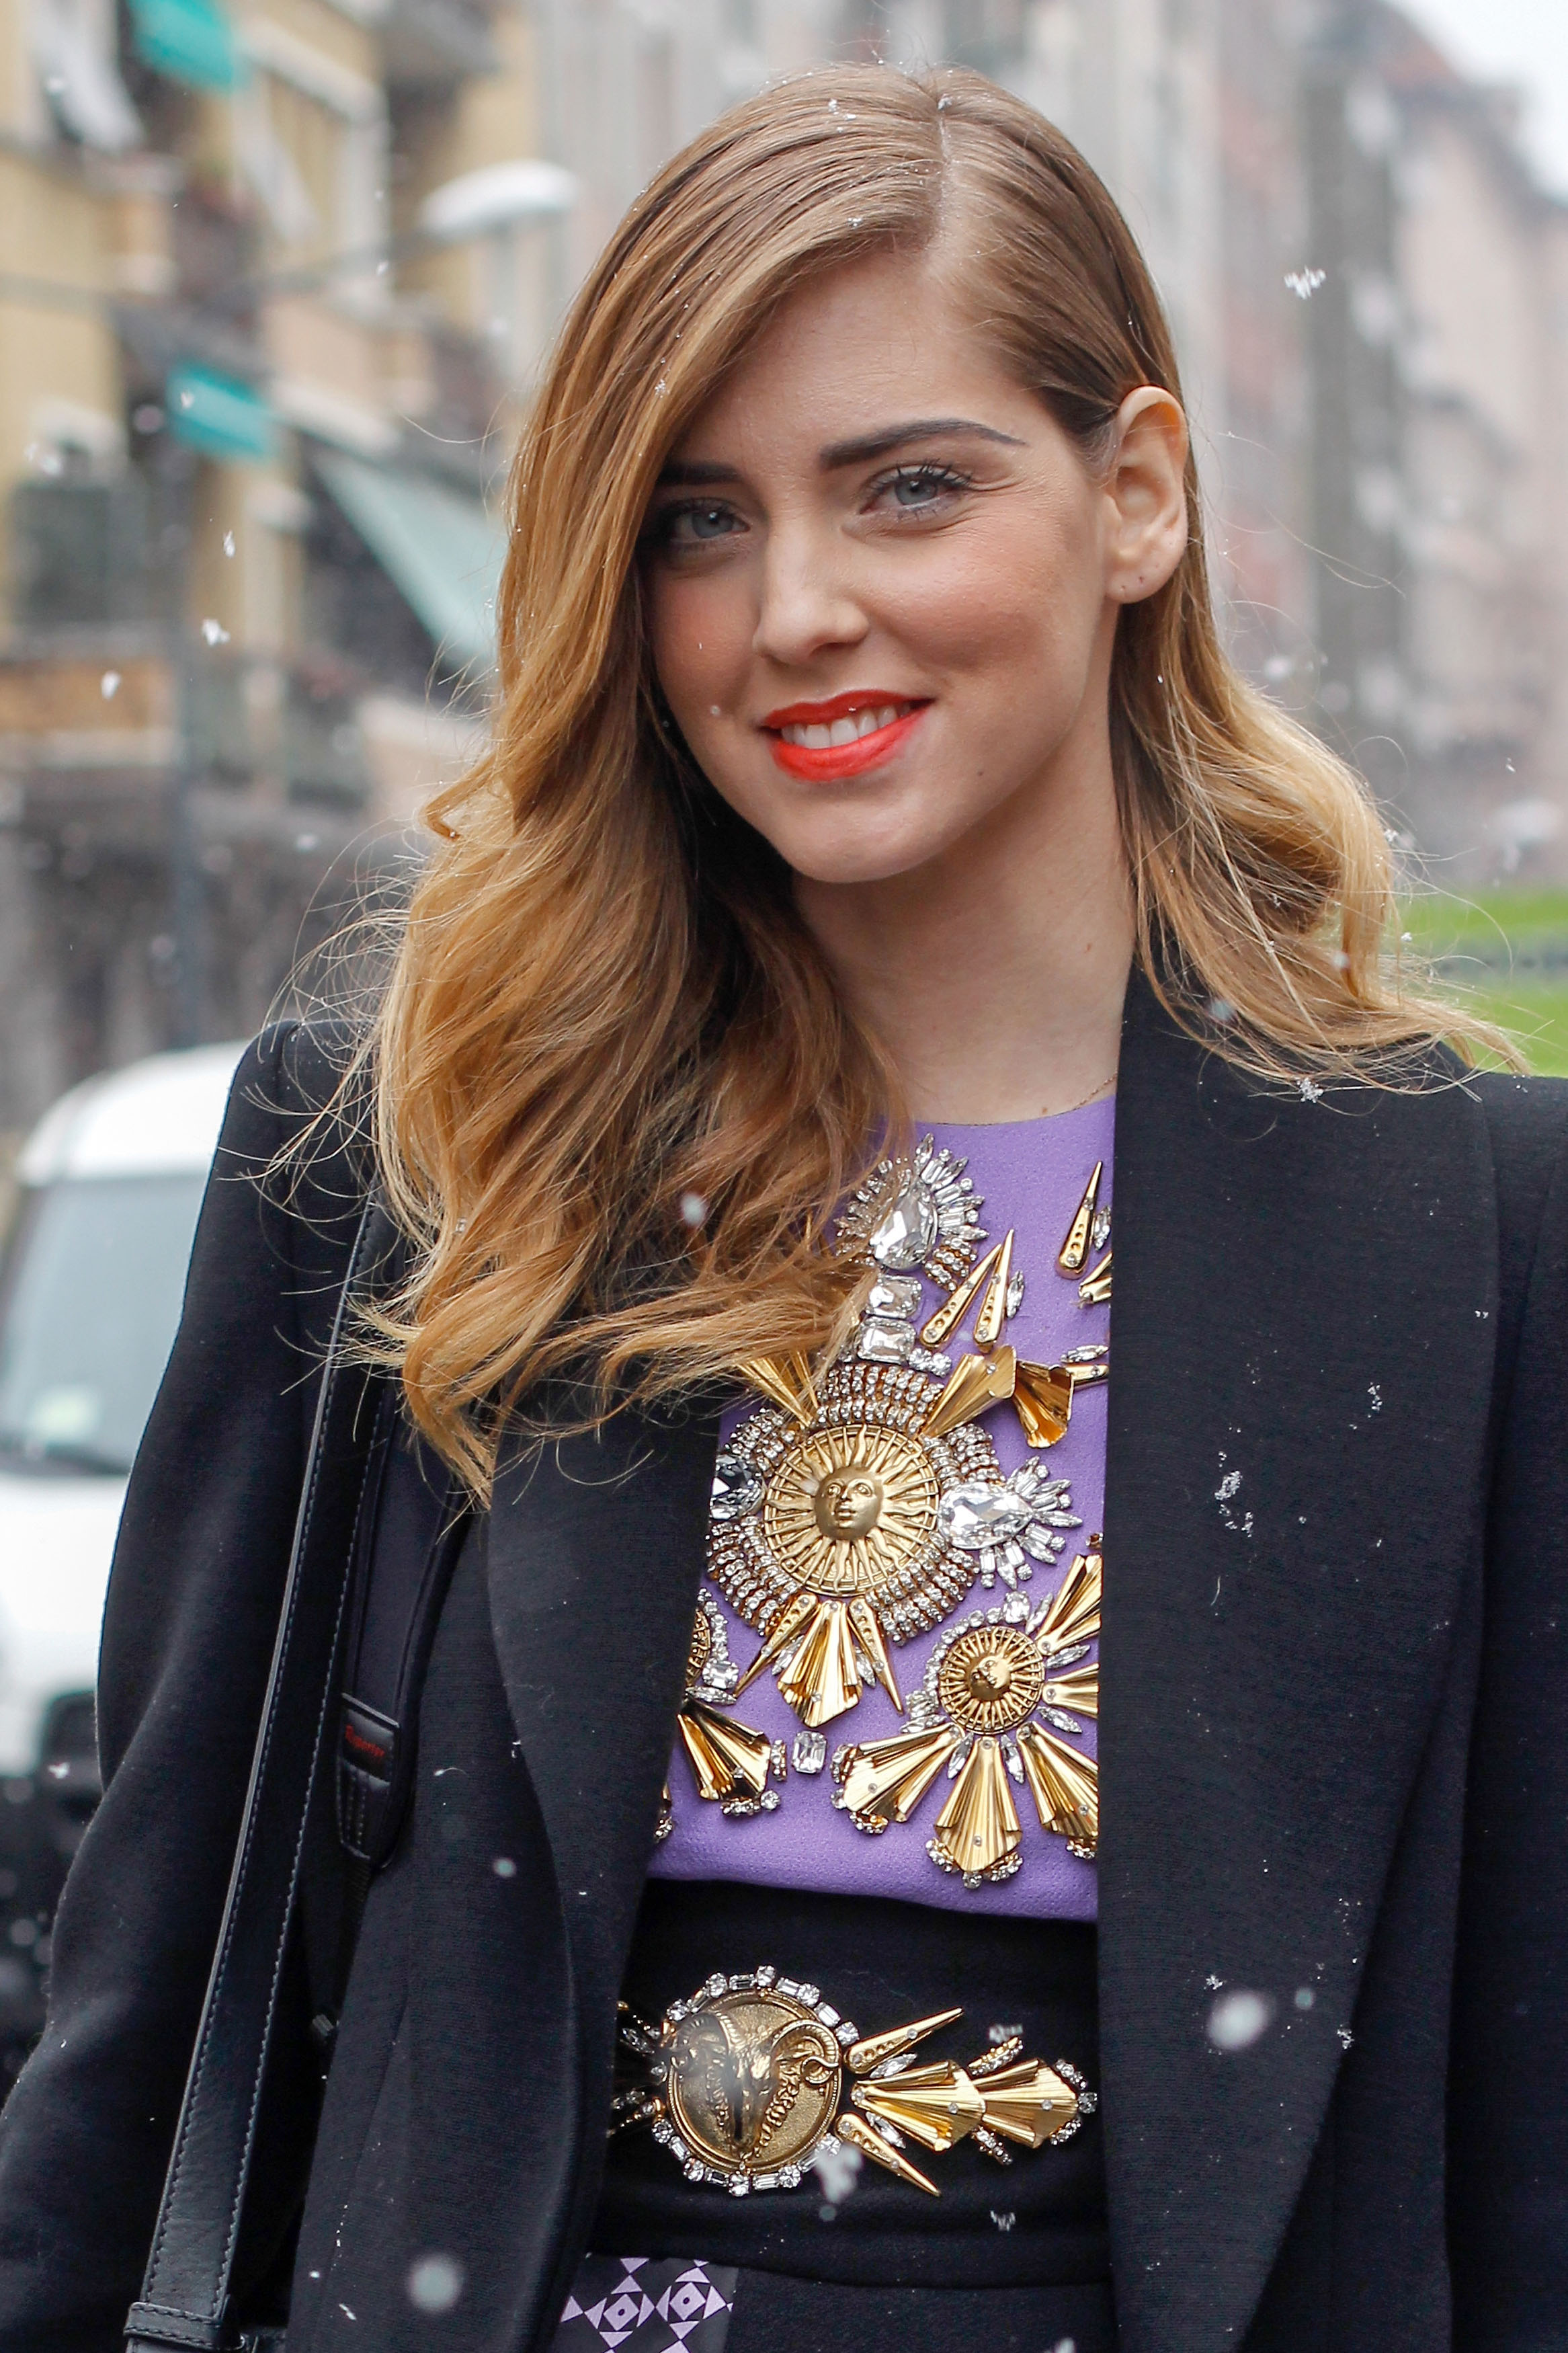 Chiara Ferragni of The Blonde Salad added a pop of color to her look with a swipe of tangerine lipstick.